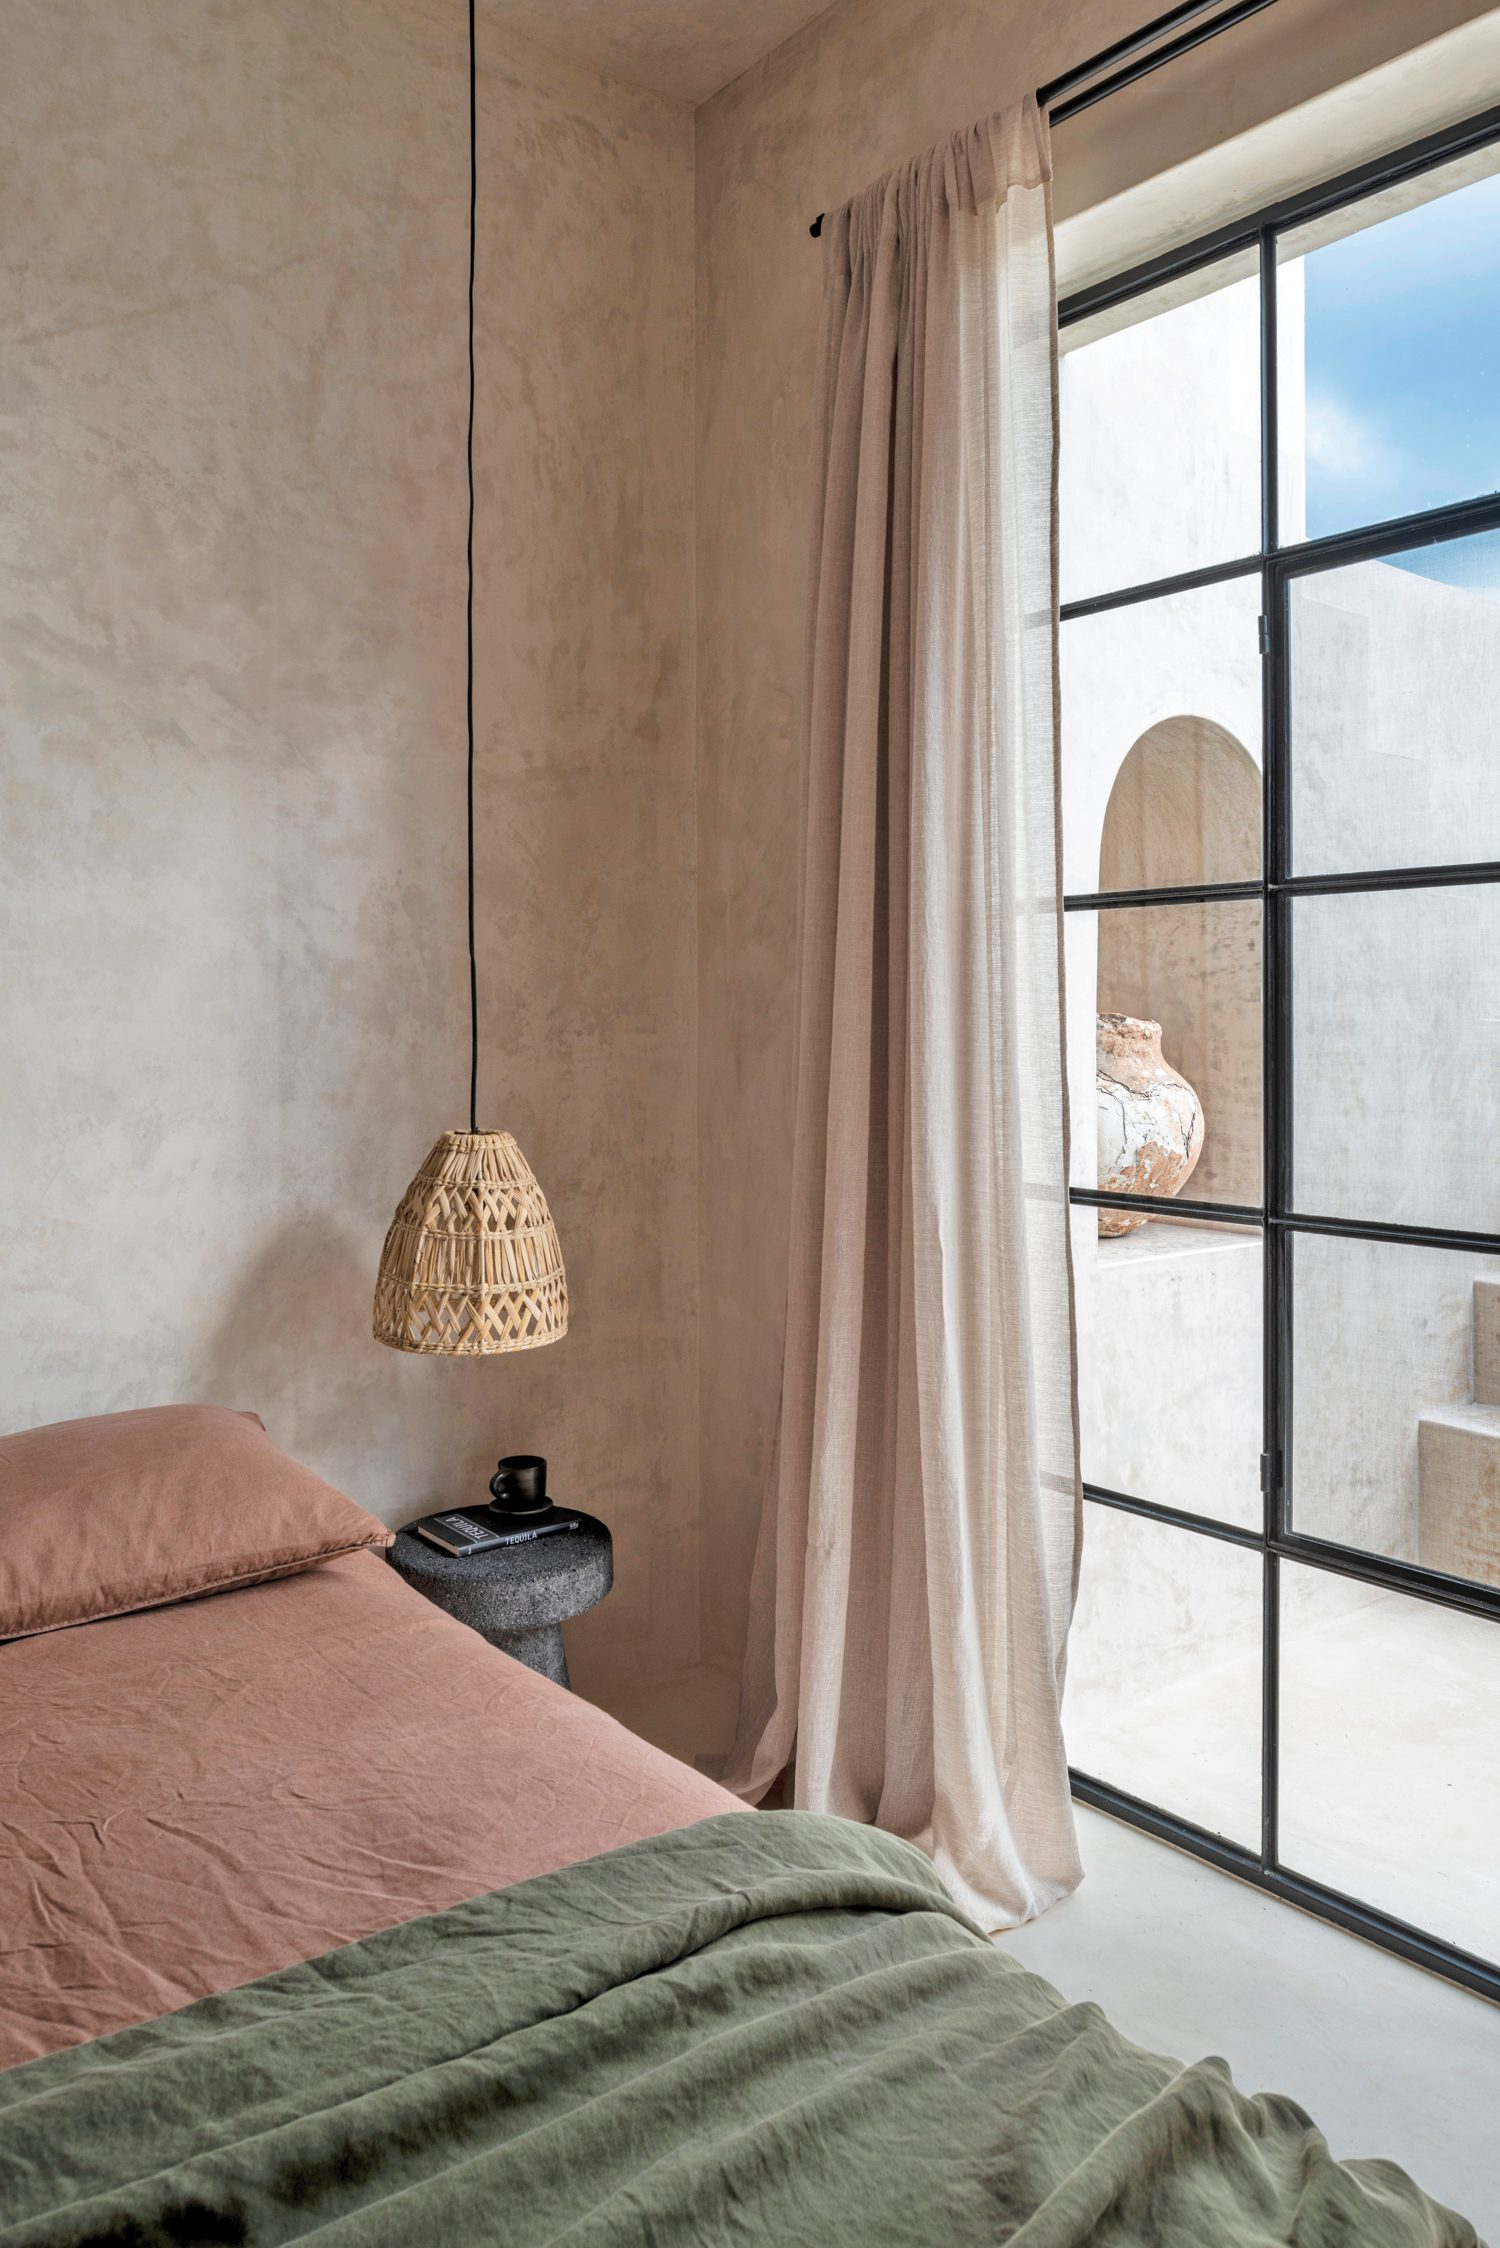 In another of the three penthouse bedrooms, the side tables are made of volcanic stone.